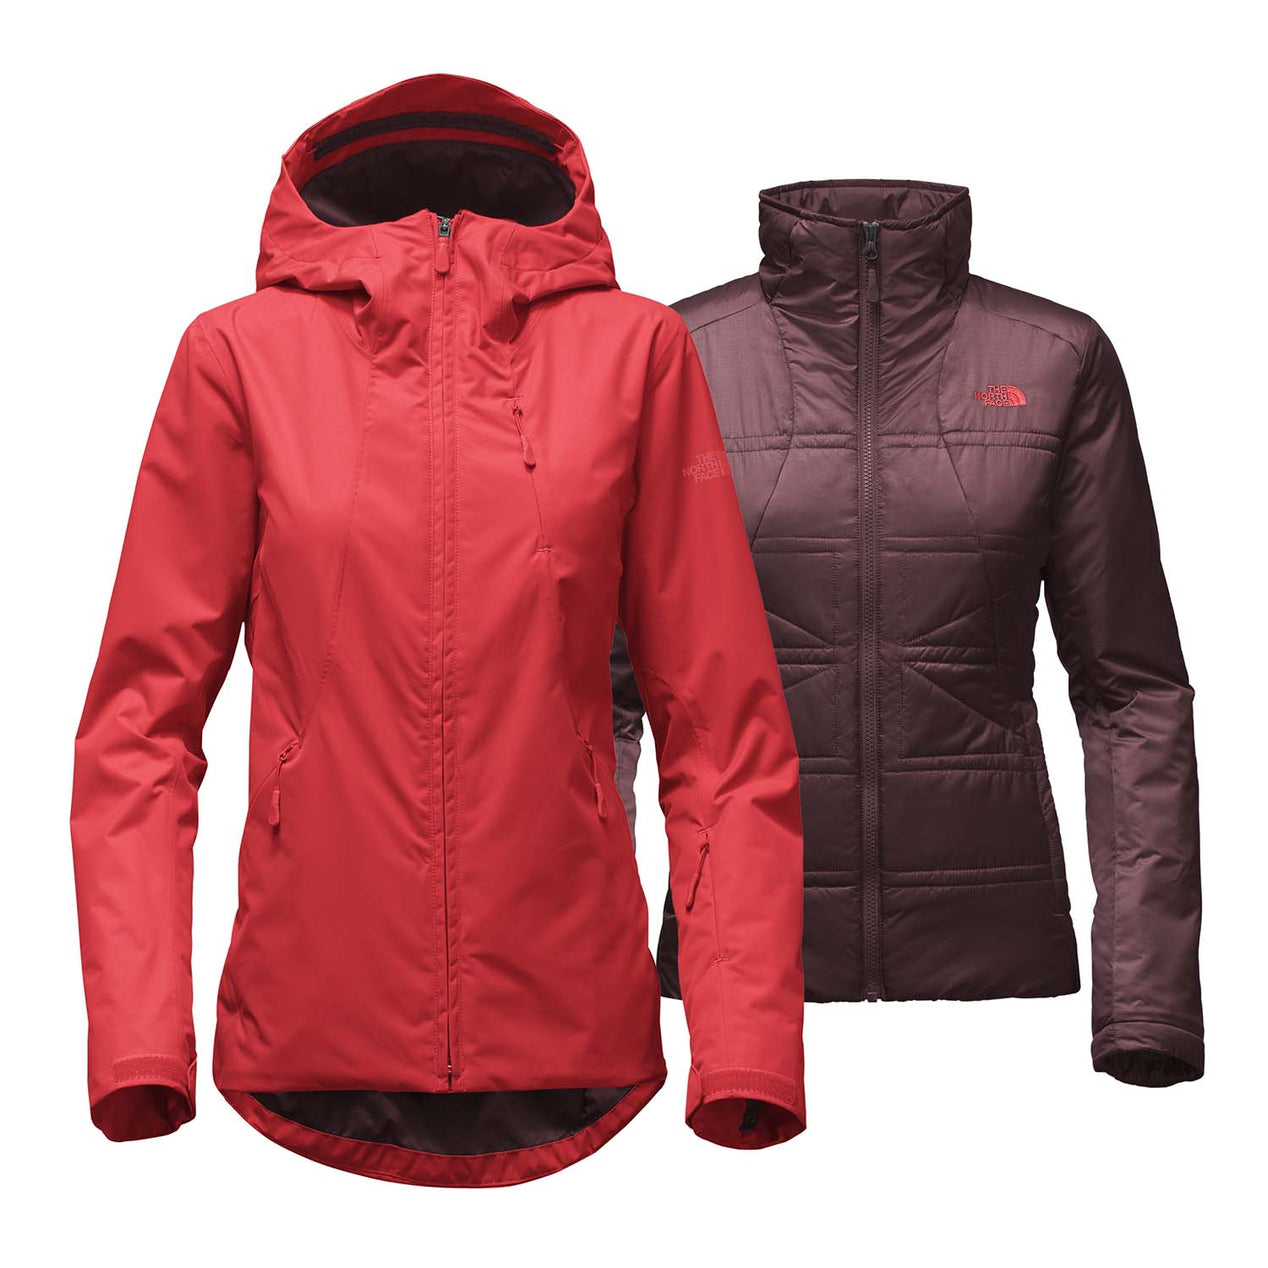 b02e07336d The North Face Women s Clementine Triclimate Jacket